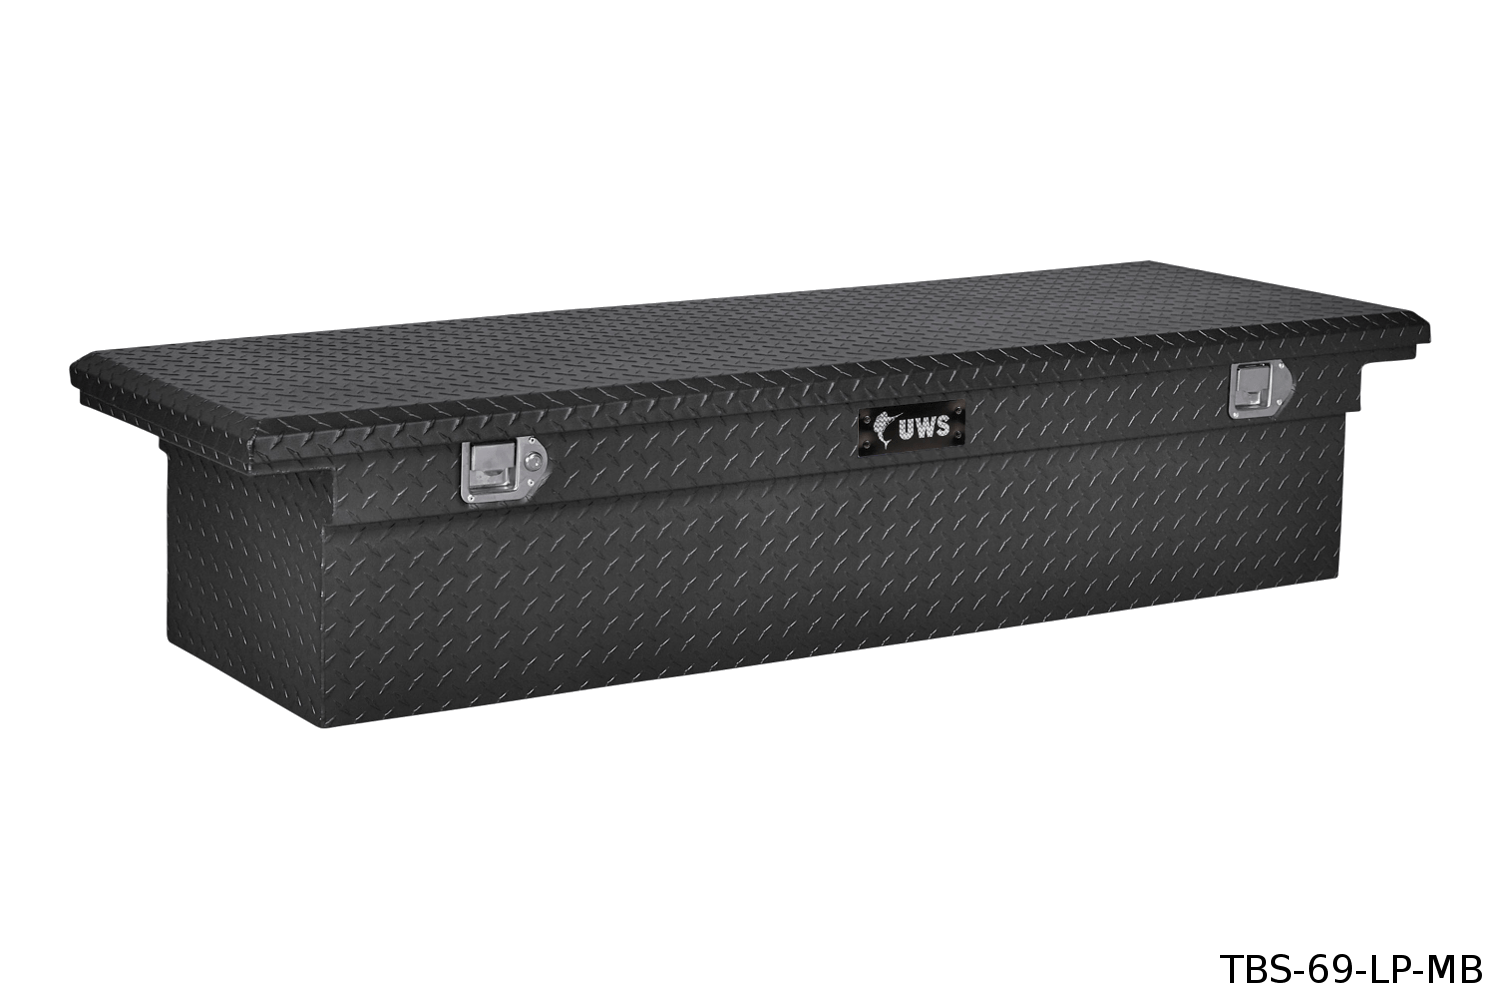 uws low profile toolbox TBS-69-LP-MB UWS lowprofile Tool Boxes